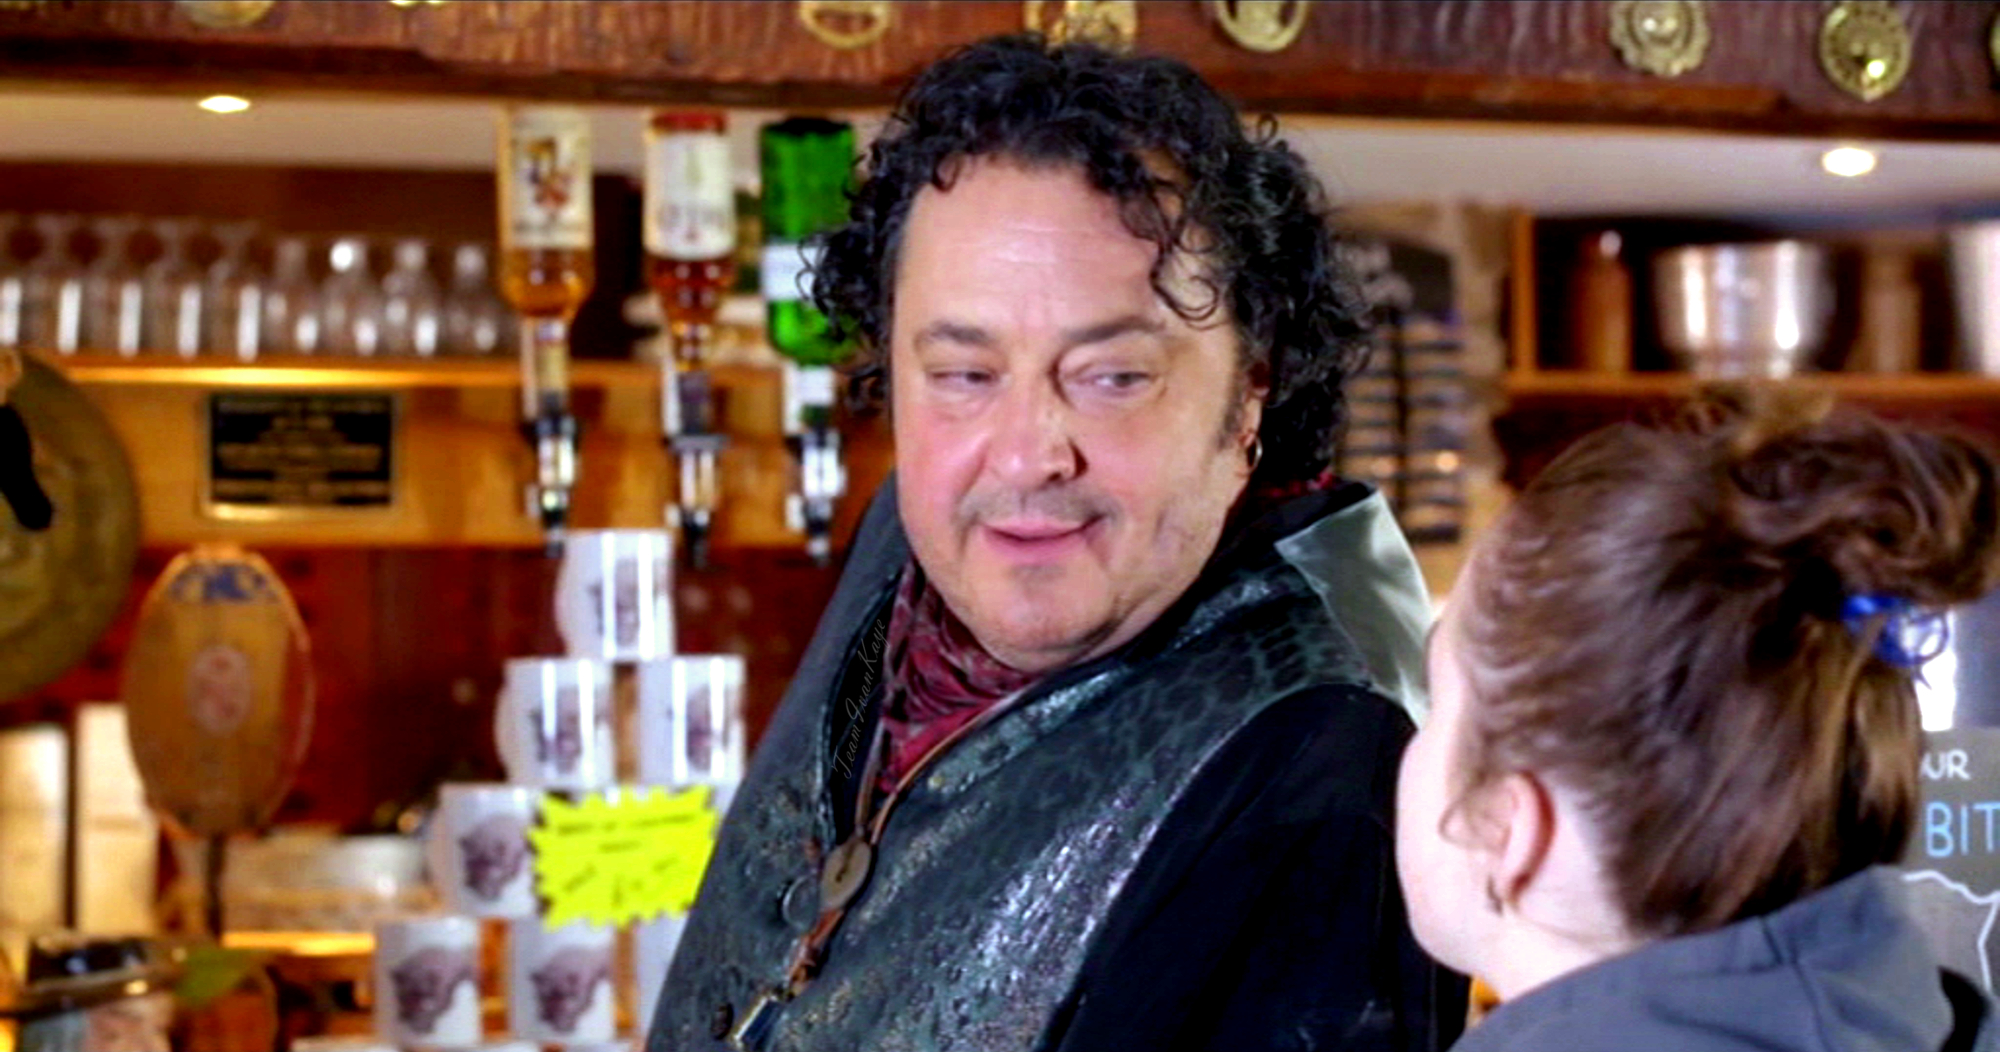 Ivan Kaye in The Coroner (2015)